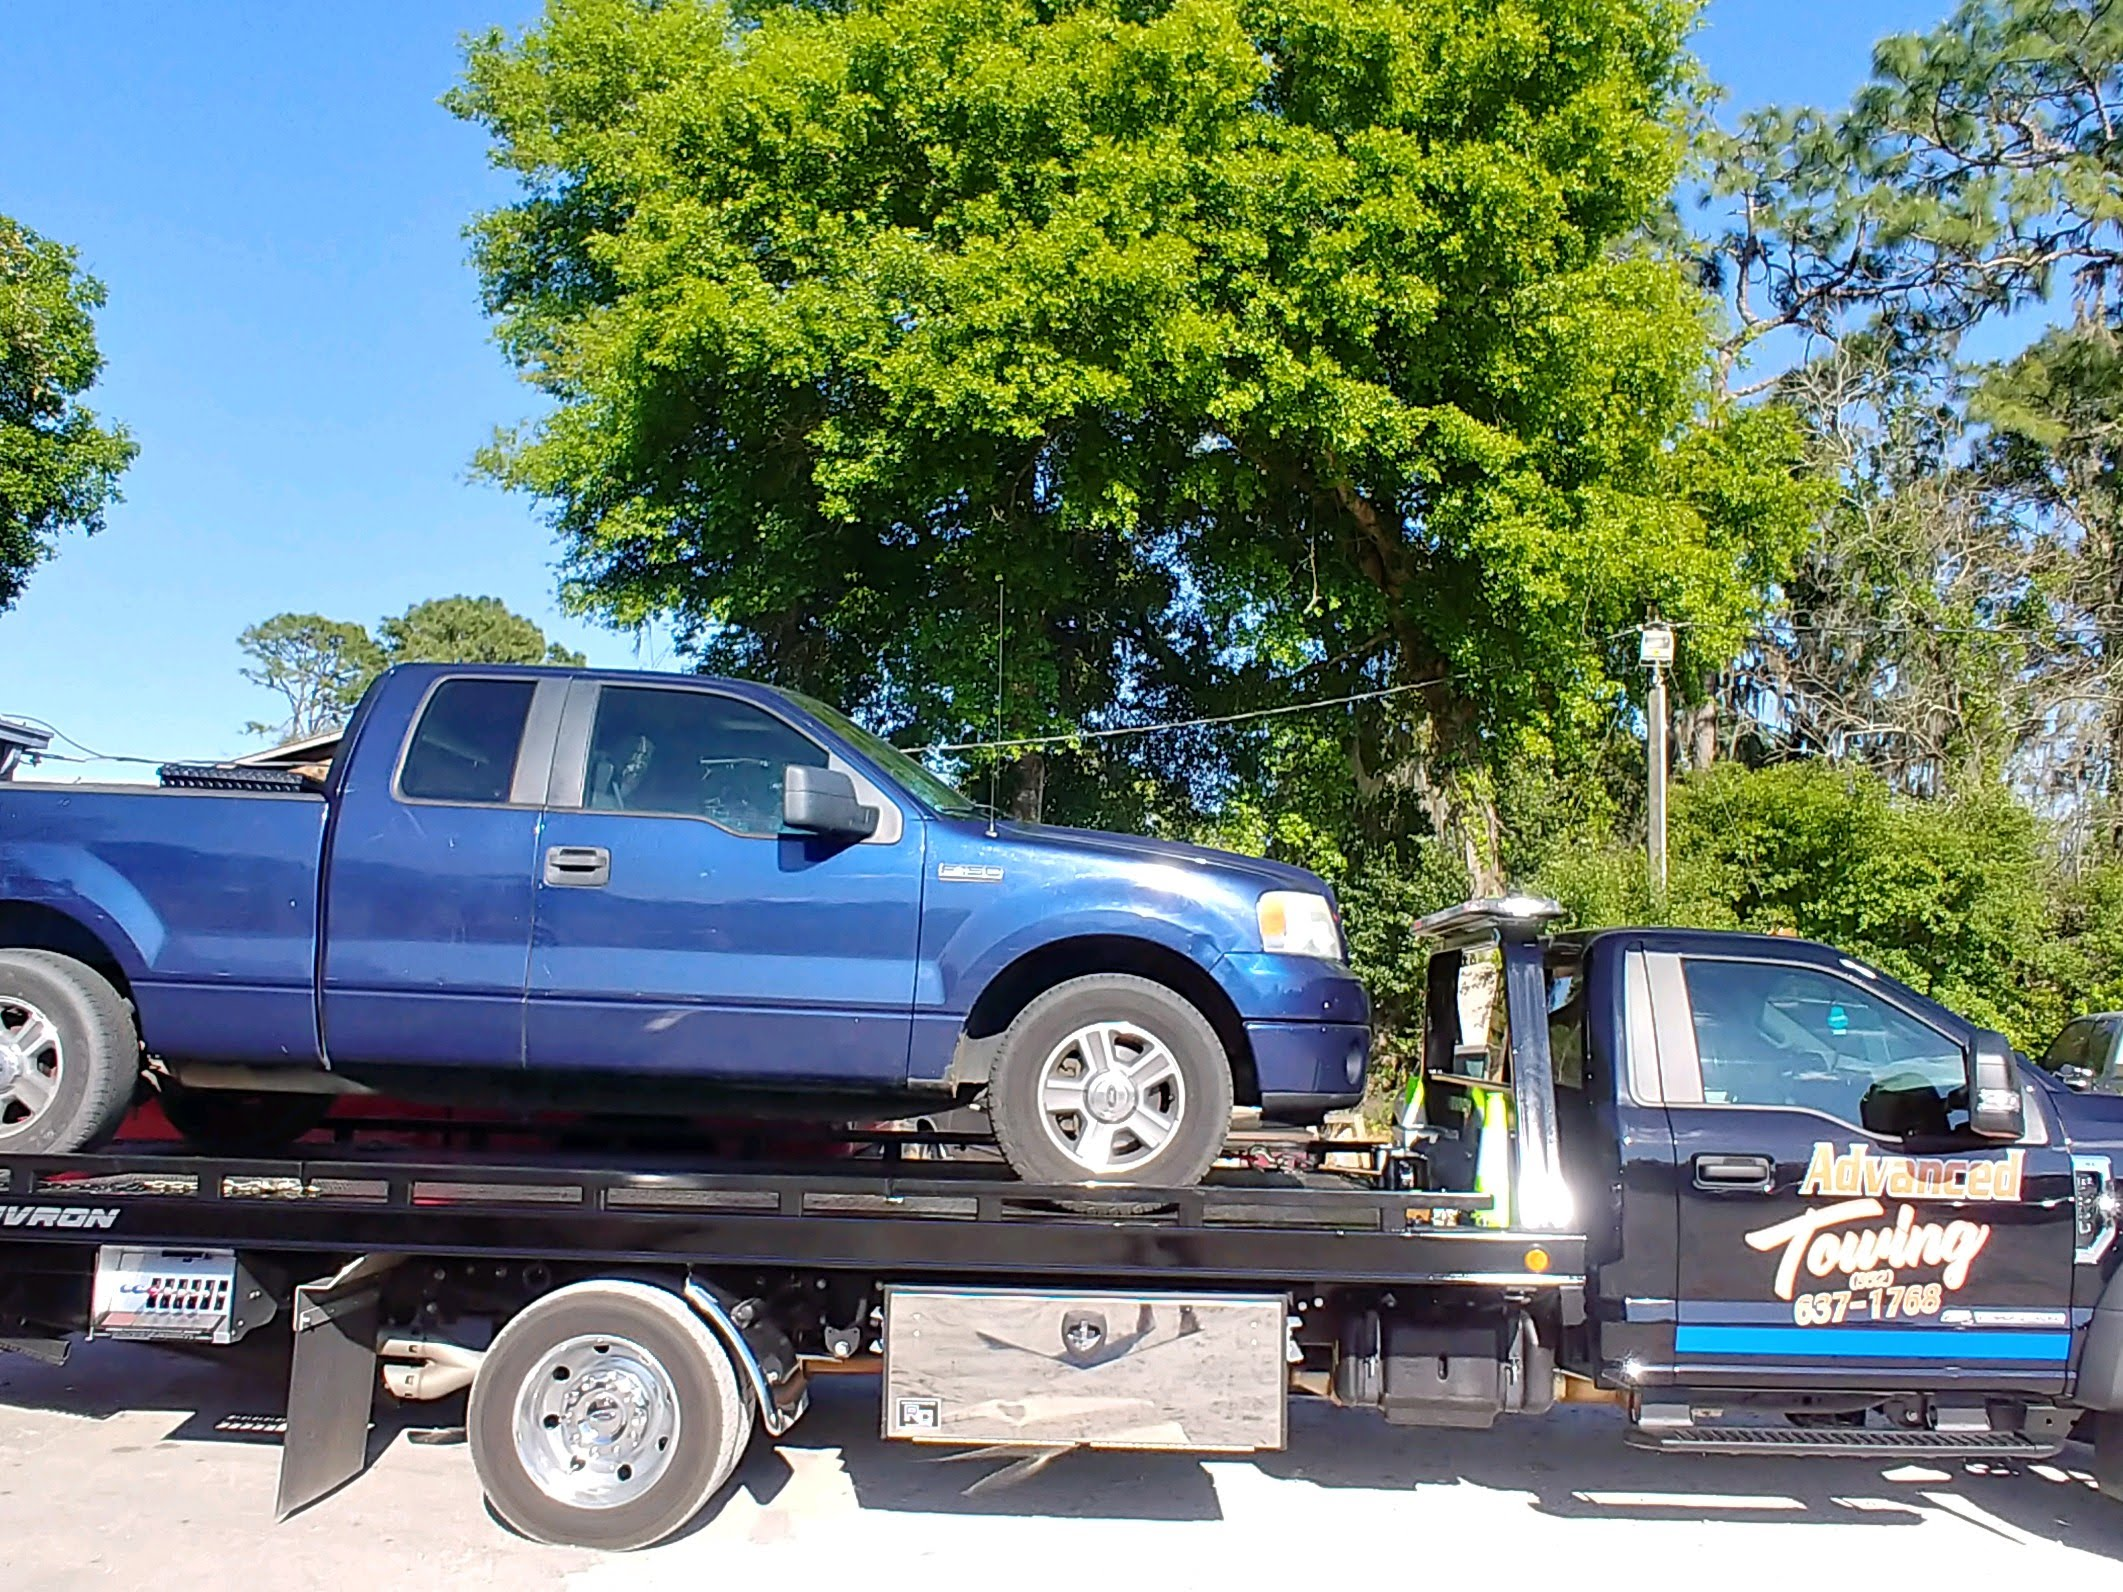 Advanced Towing image 40